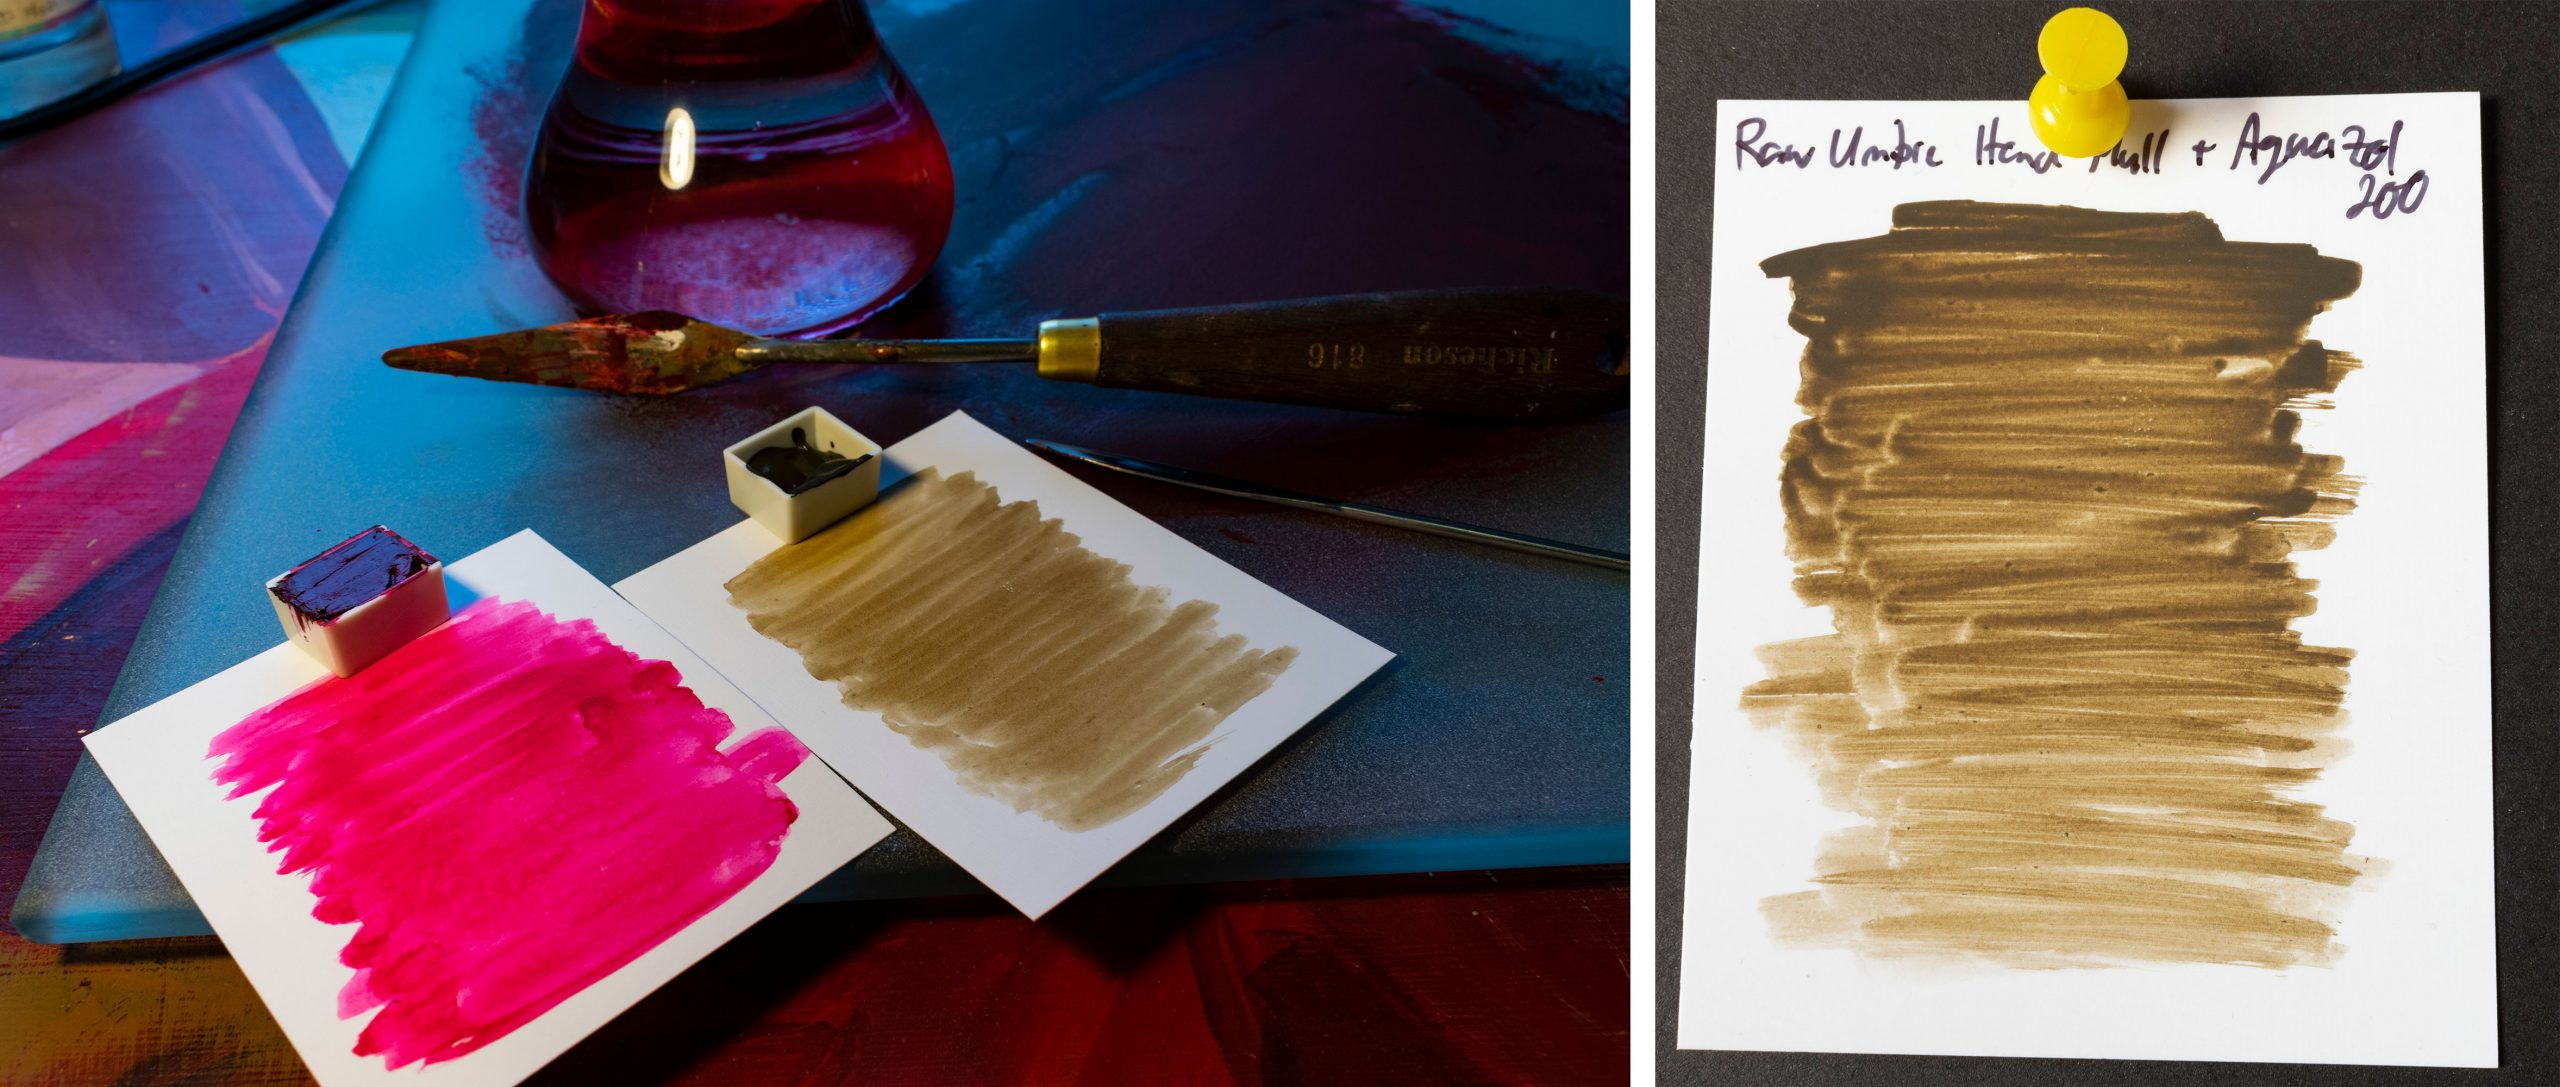 Final images of watercolours made by hand dispersion with glass muller. Two pans of red and brown and two paint outs.